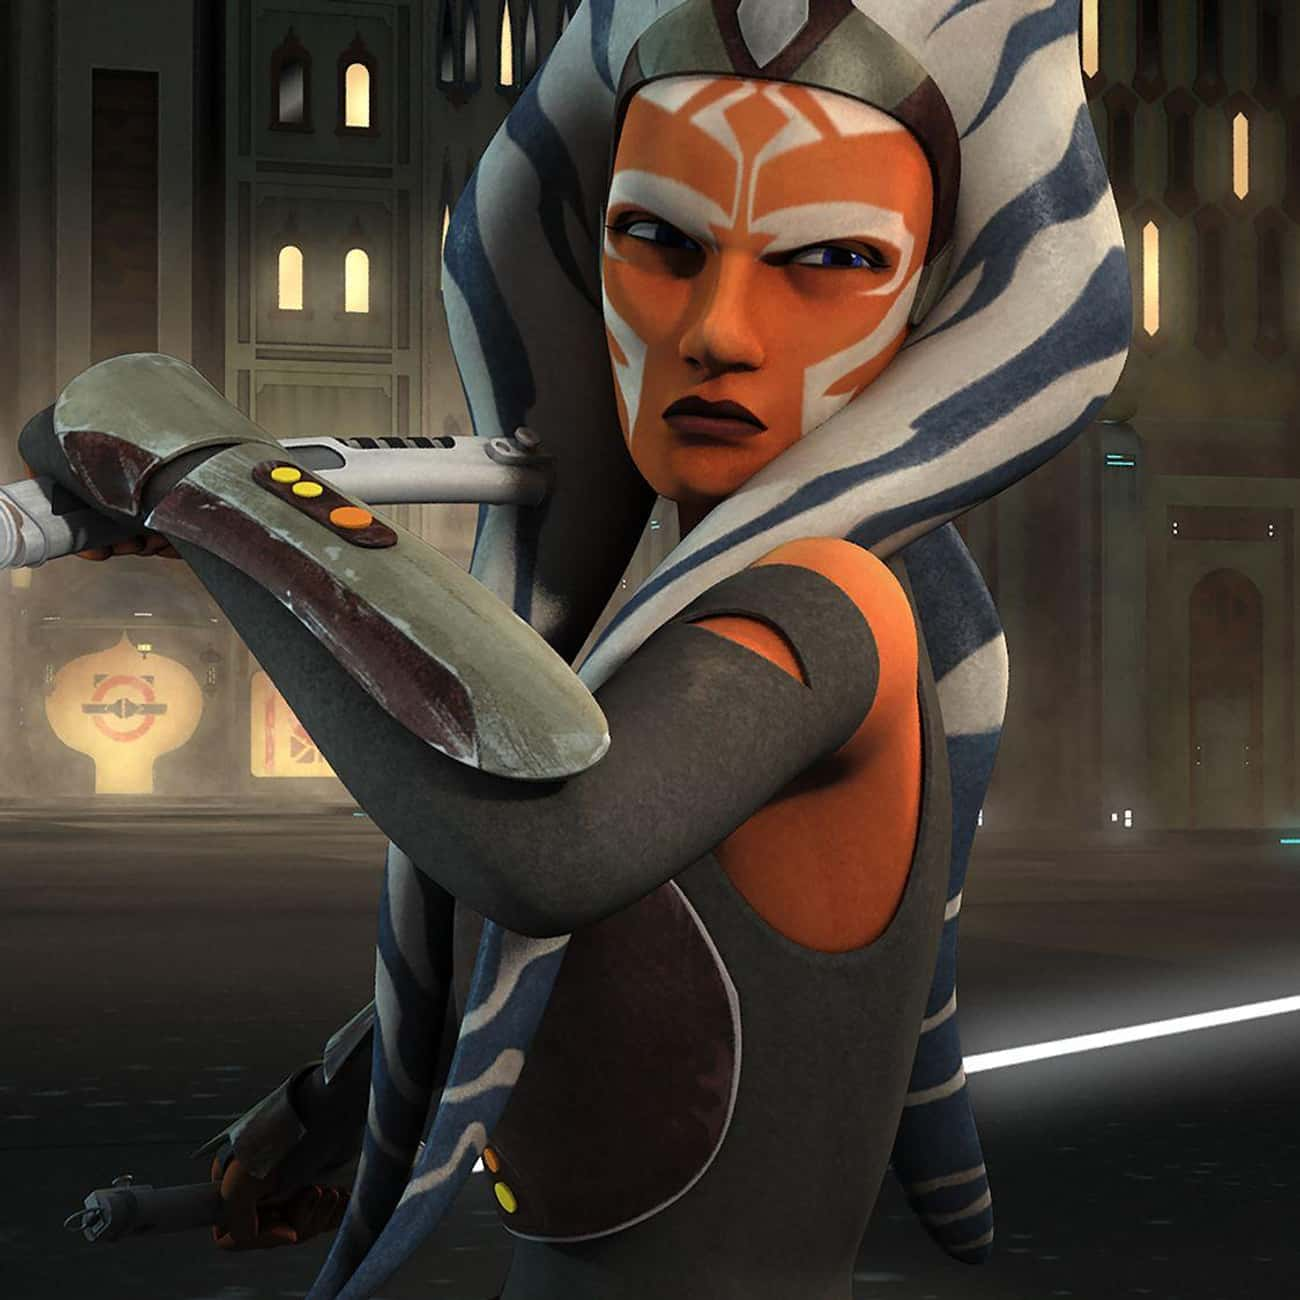 Not Coming Back is listed (or ranked) 3 on the list The Very Best Ahsoka Tano Quotes, Ranked